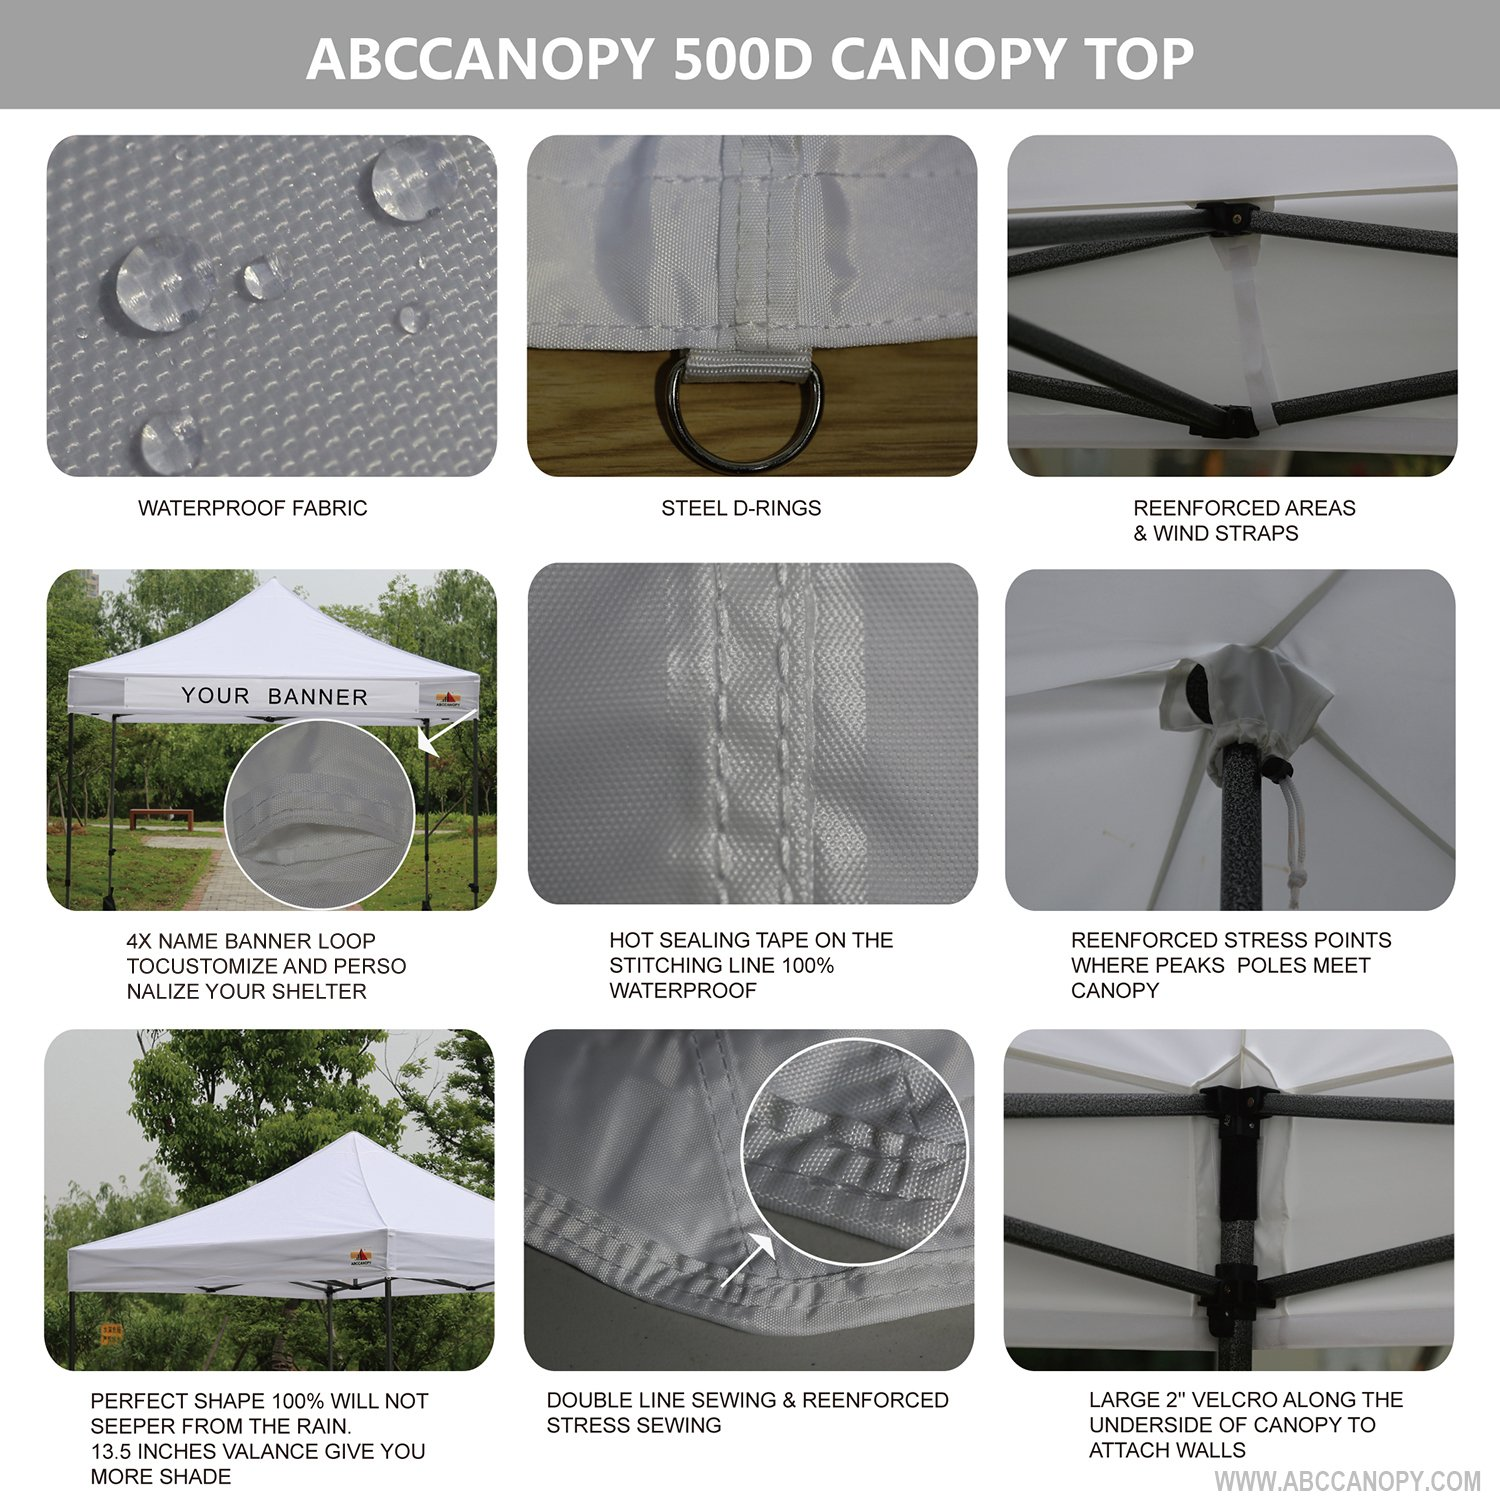 Abccanopy Deluxe 10x10 Instant Canopy Craft Display Tent Portable Booth Market Stall with Wheeled Carry Bag , Bonus 4x Weight Bag by ABCCANOPY (Image #5)